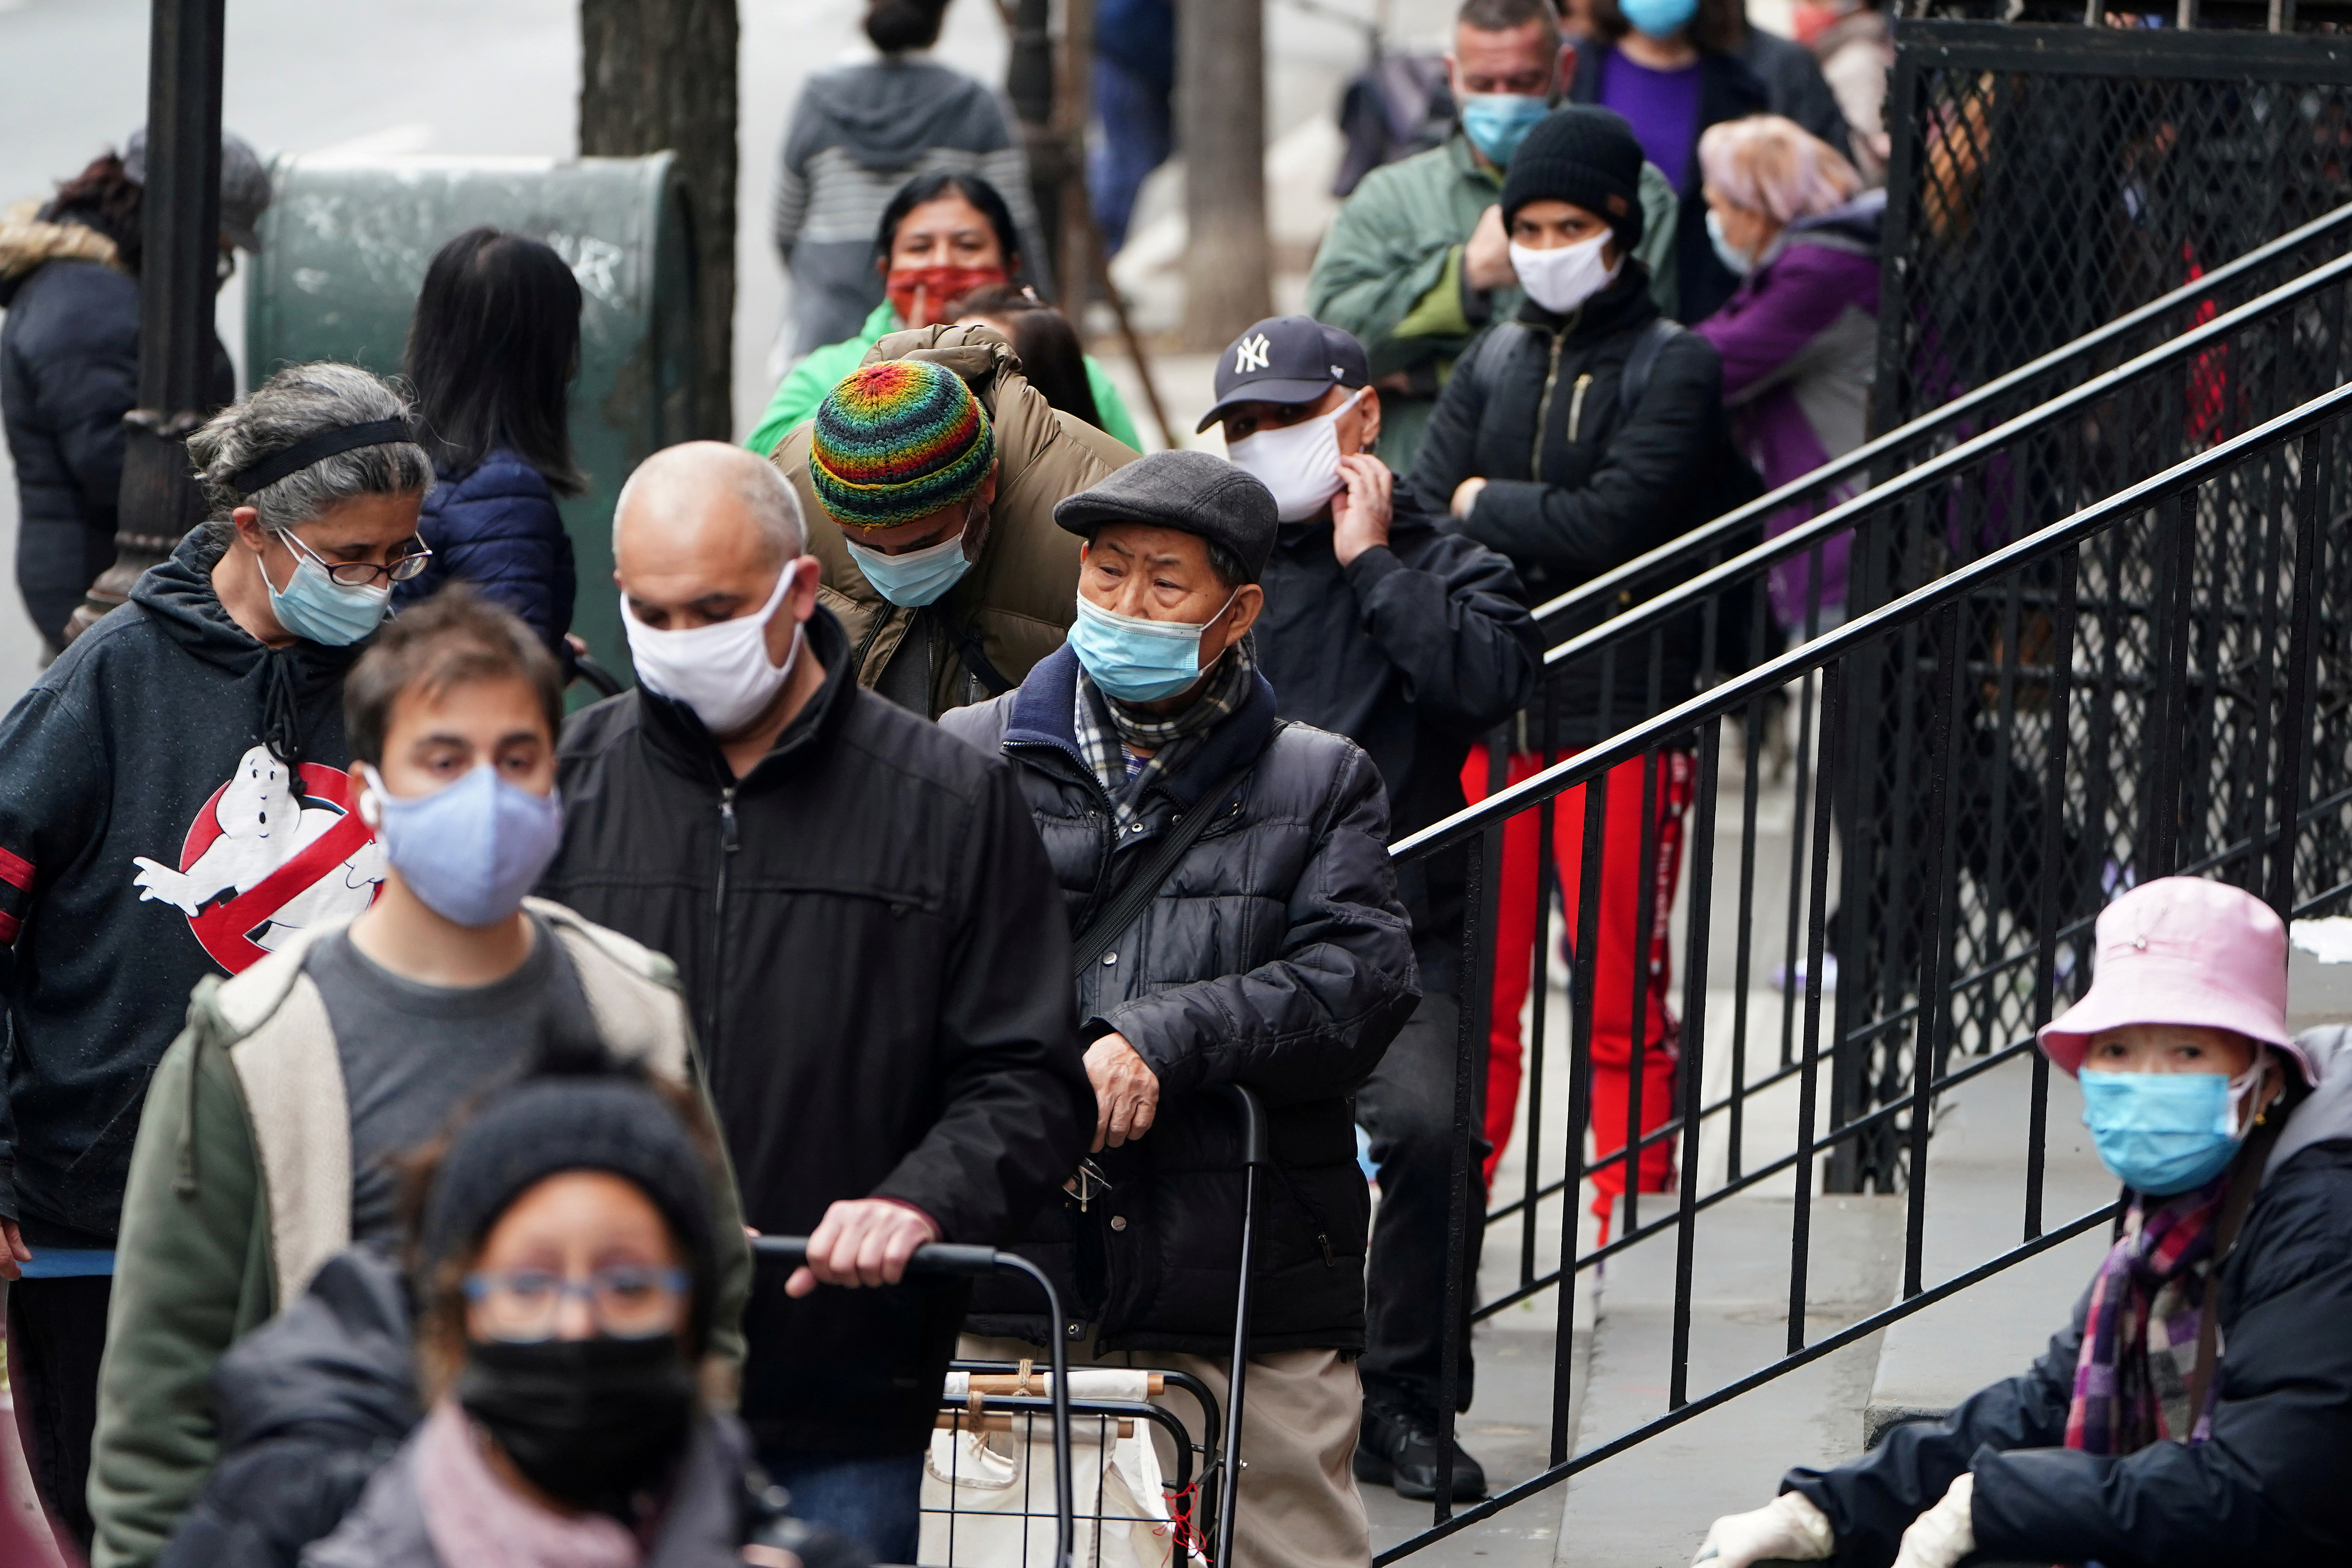 People wait in line at the St. Clements Food Pantry for food during the coronavirus disease (COVID-19) pandemic in the Manhattan borough of New York City, New York, U.S., December 11, 2020. REUTERS/Carlo Allegri